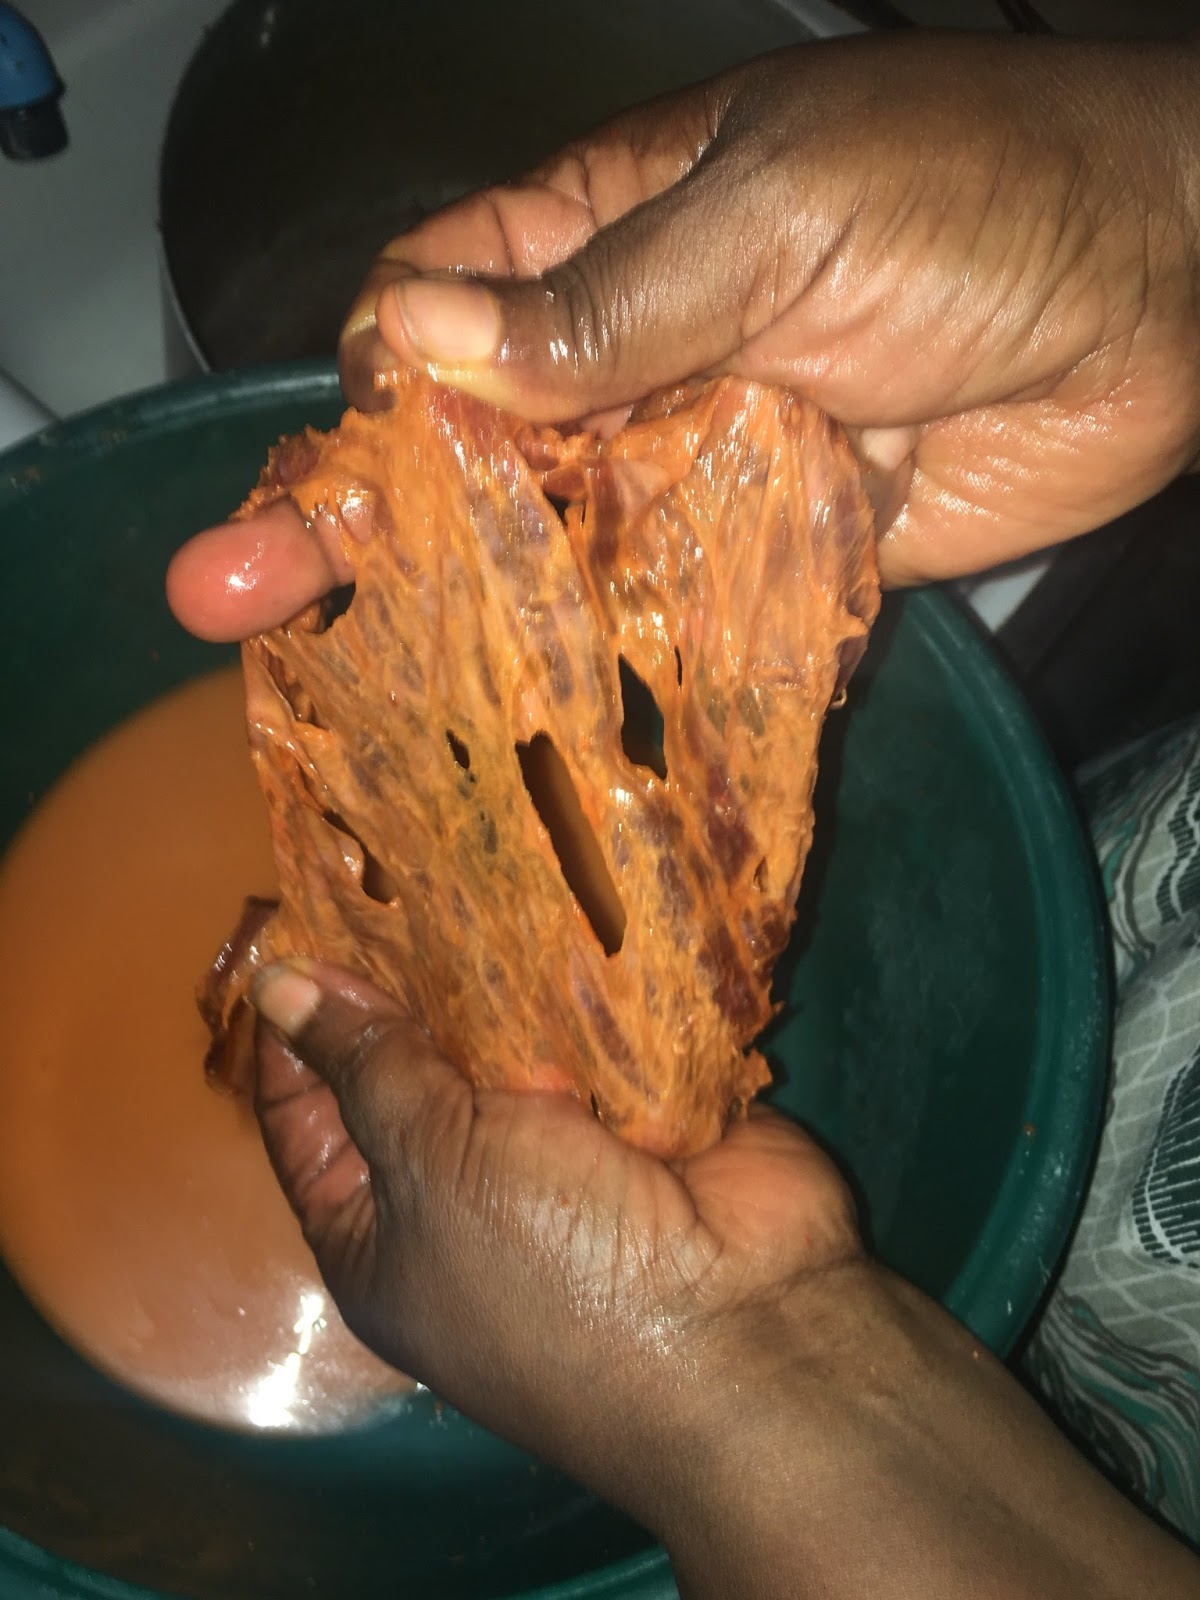 Twitter User Raises Alarm After Discovering Kilishi Made From Rubber Instead Of Beef